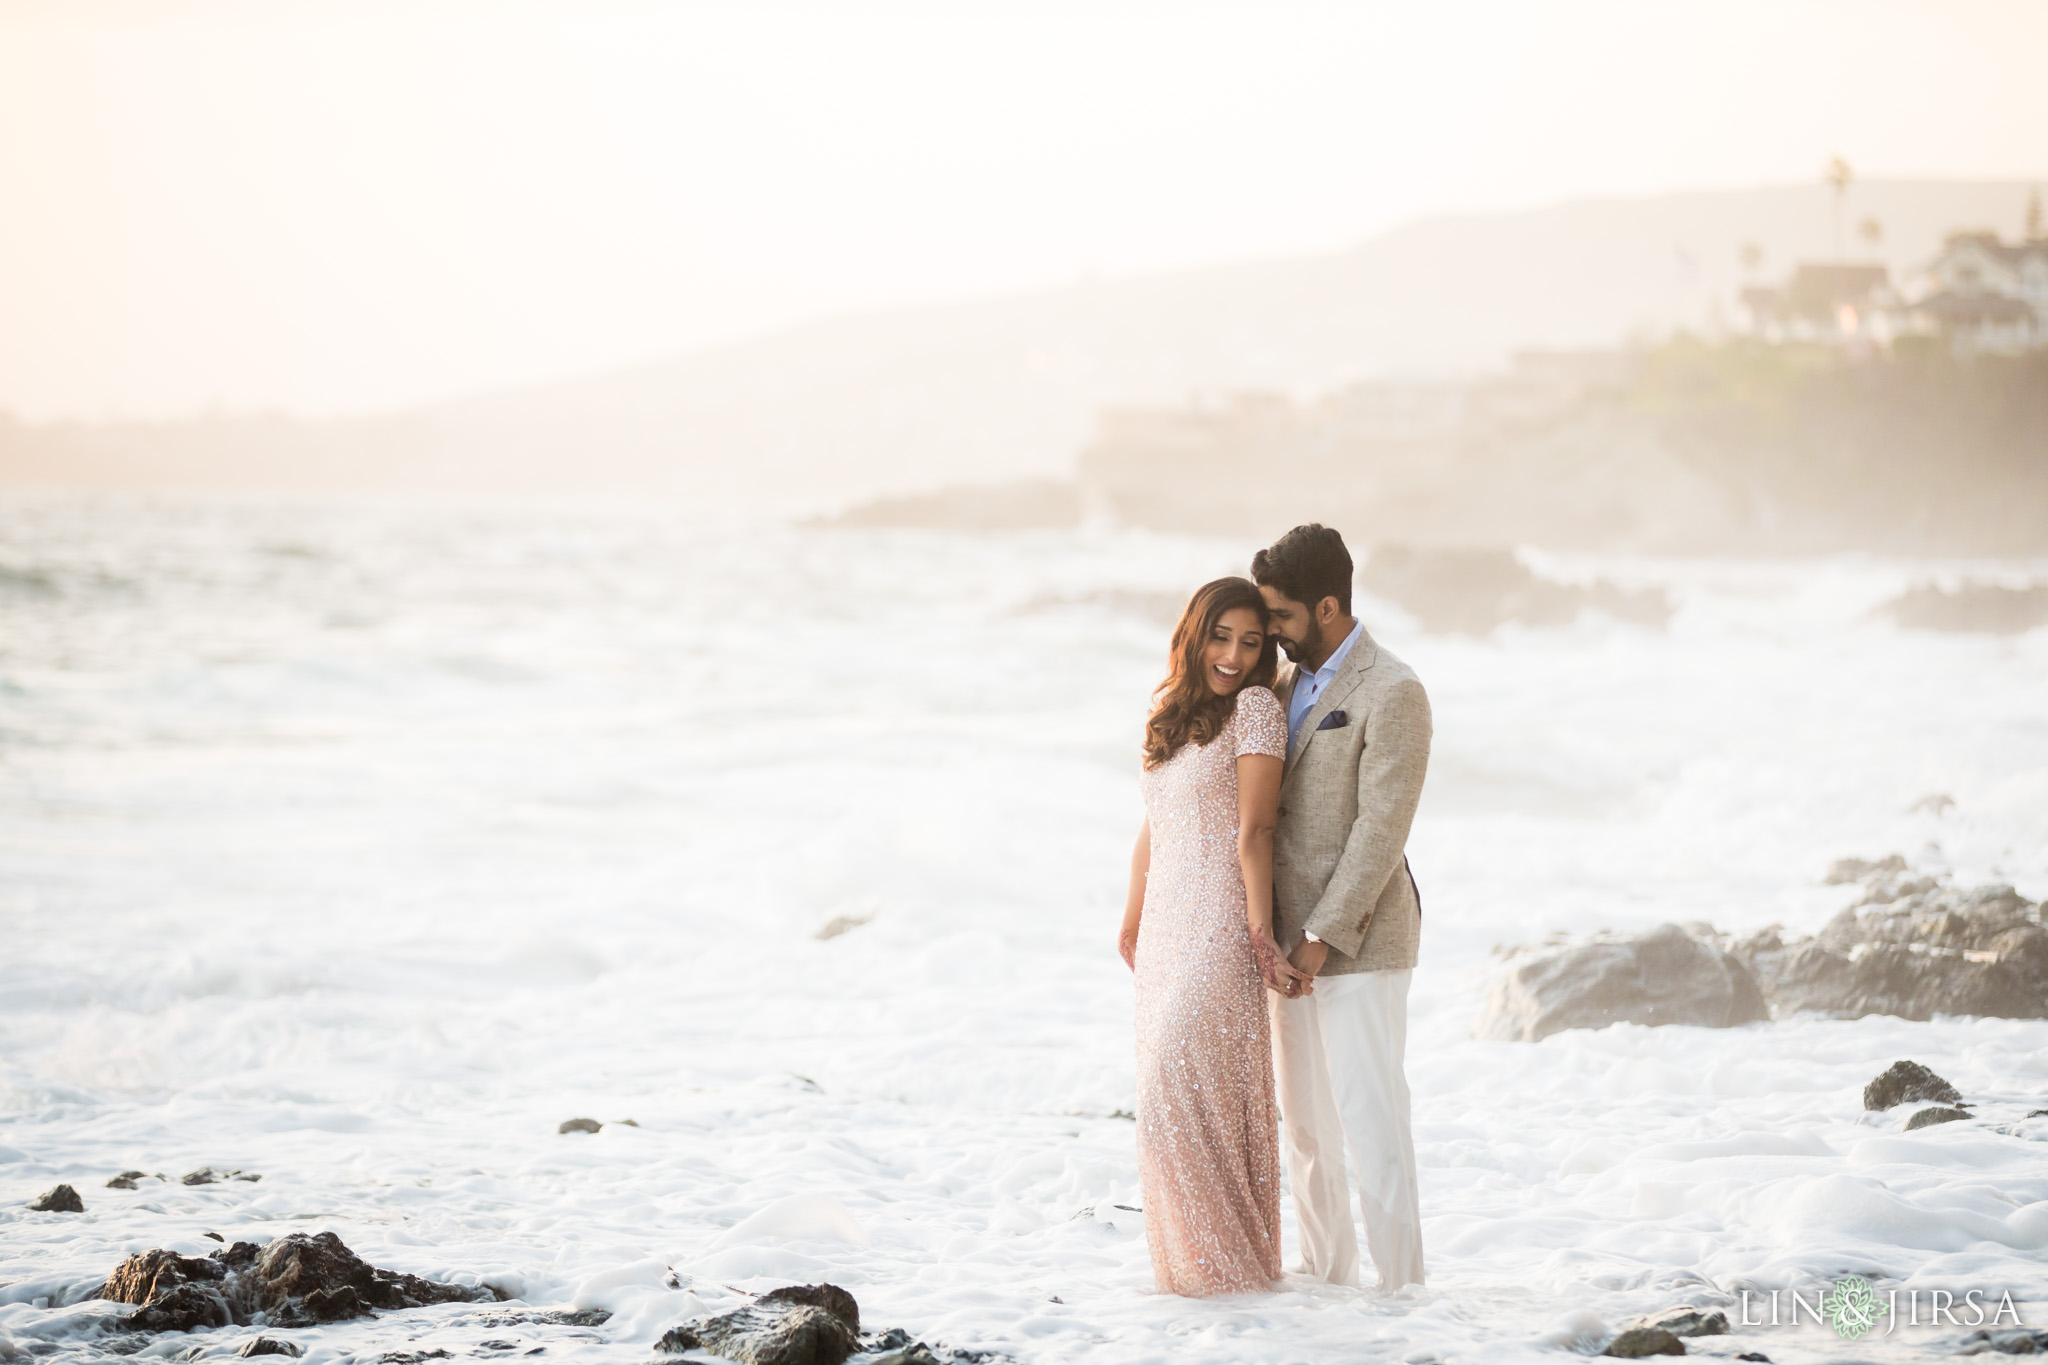 18-mission-san-juan-capistrano-engagement-photography